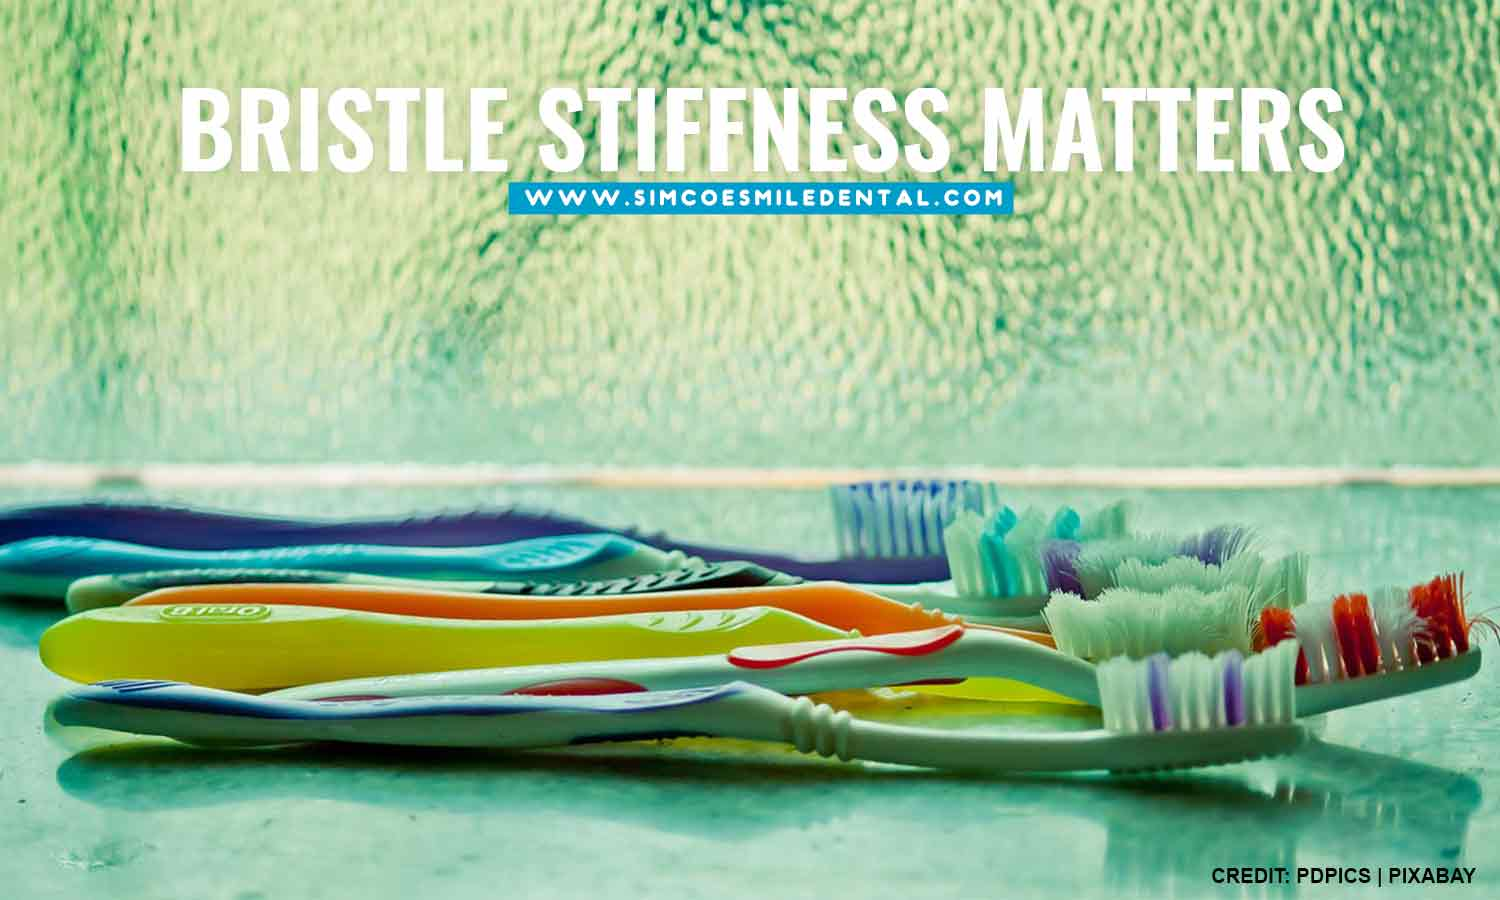 Bristle-stiffness-matters How to Pick the Right Toothbrush for You